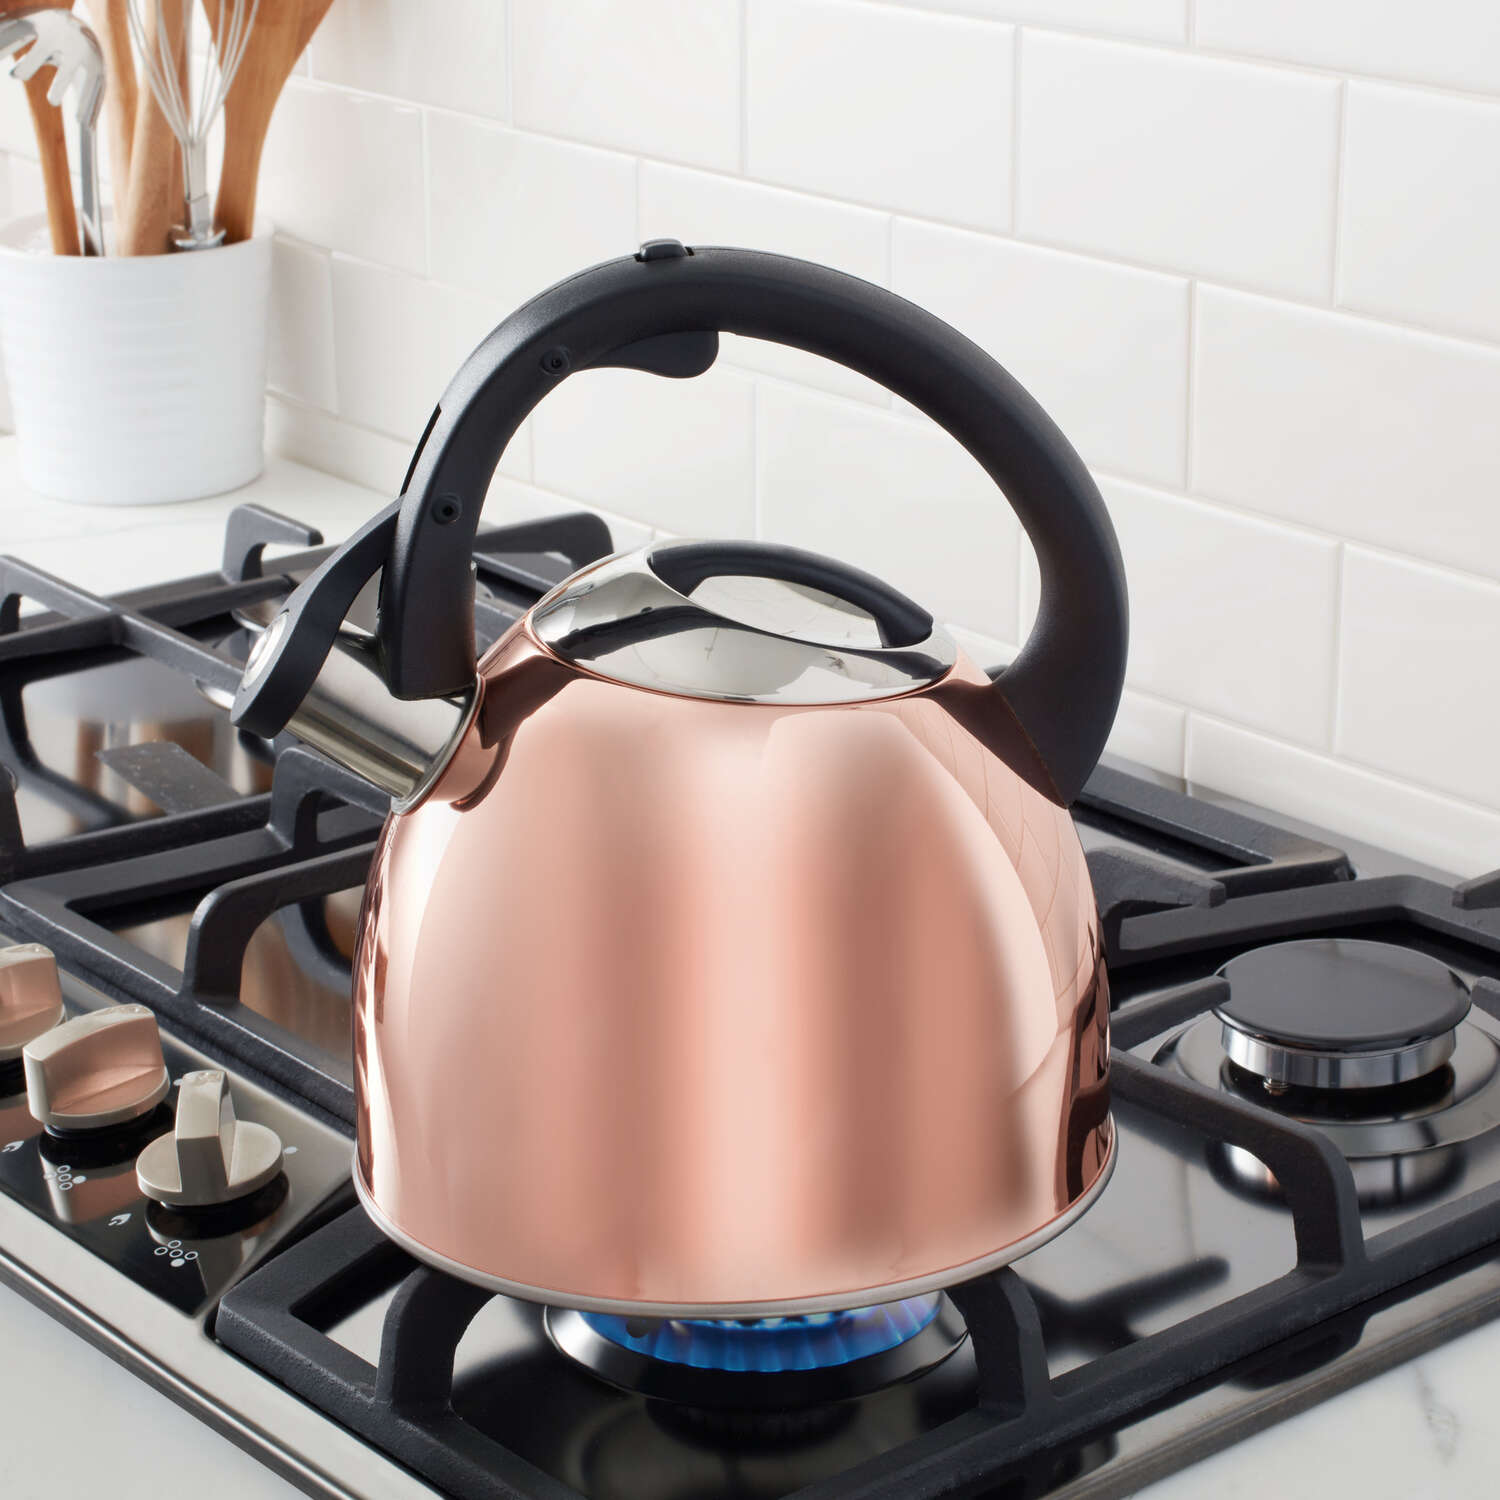 Copco  Copper  Classic Whistle  Stainless Steel  2-1/2 qt. Tea Kettle